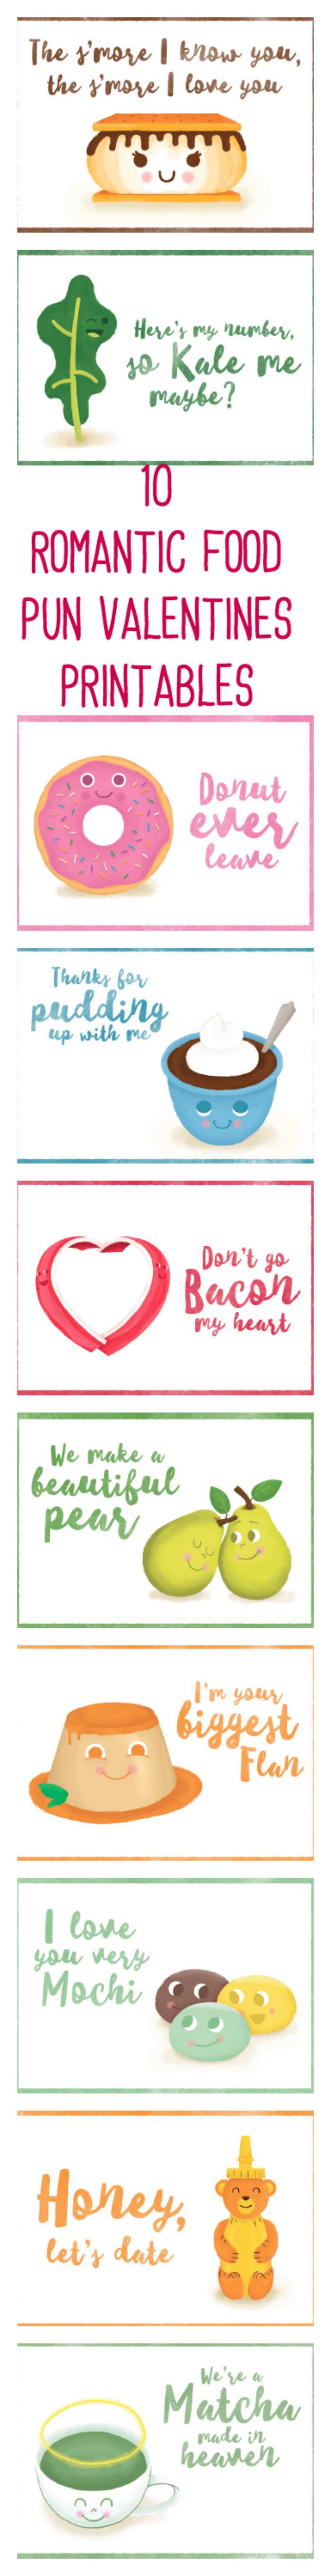 10 Romantic Food Pun Valentines Printables (Valentins Day Party College)